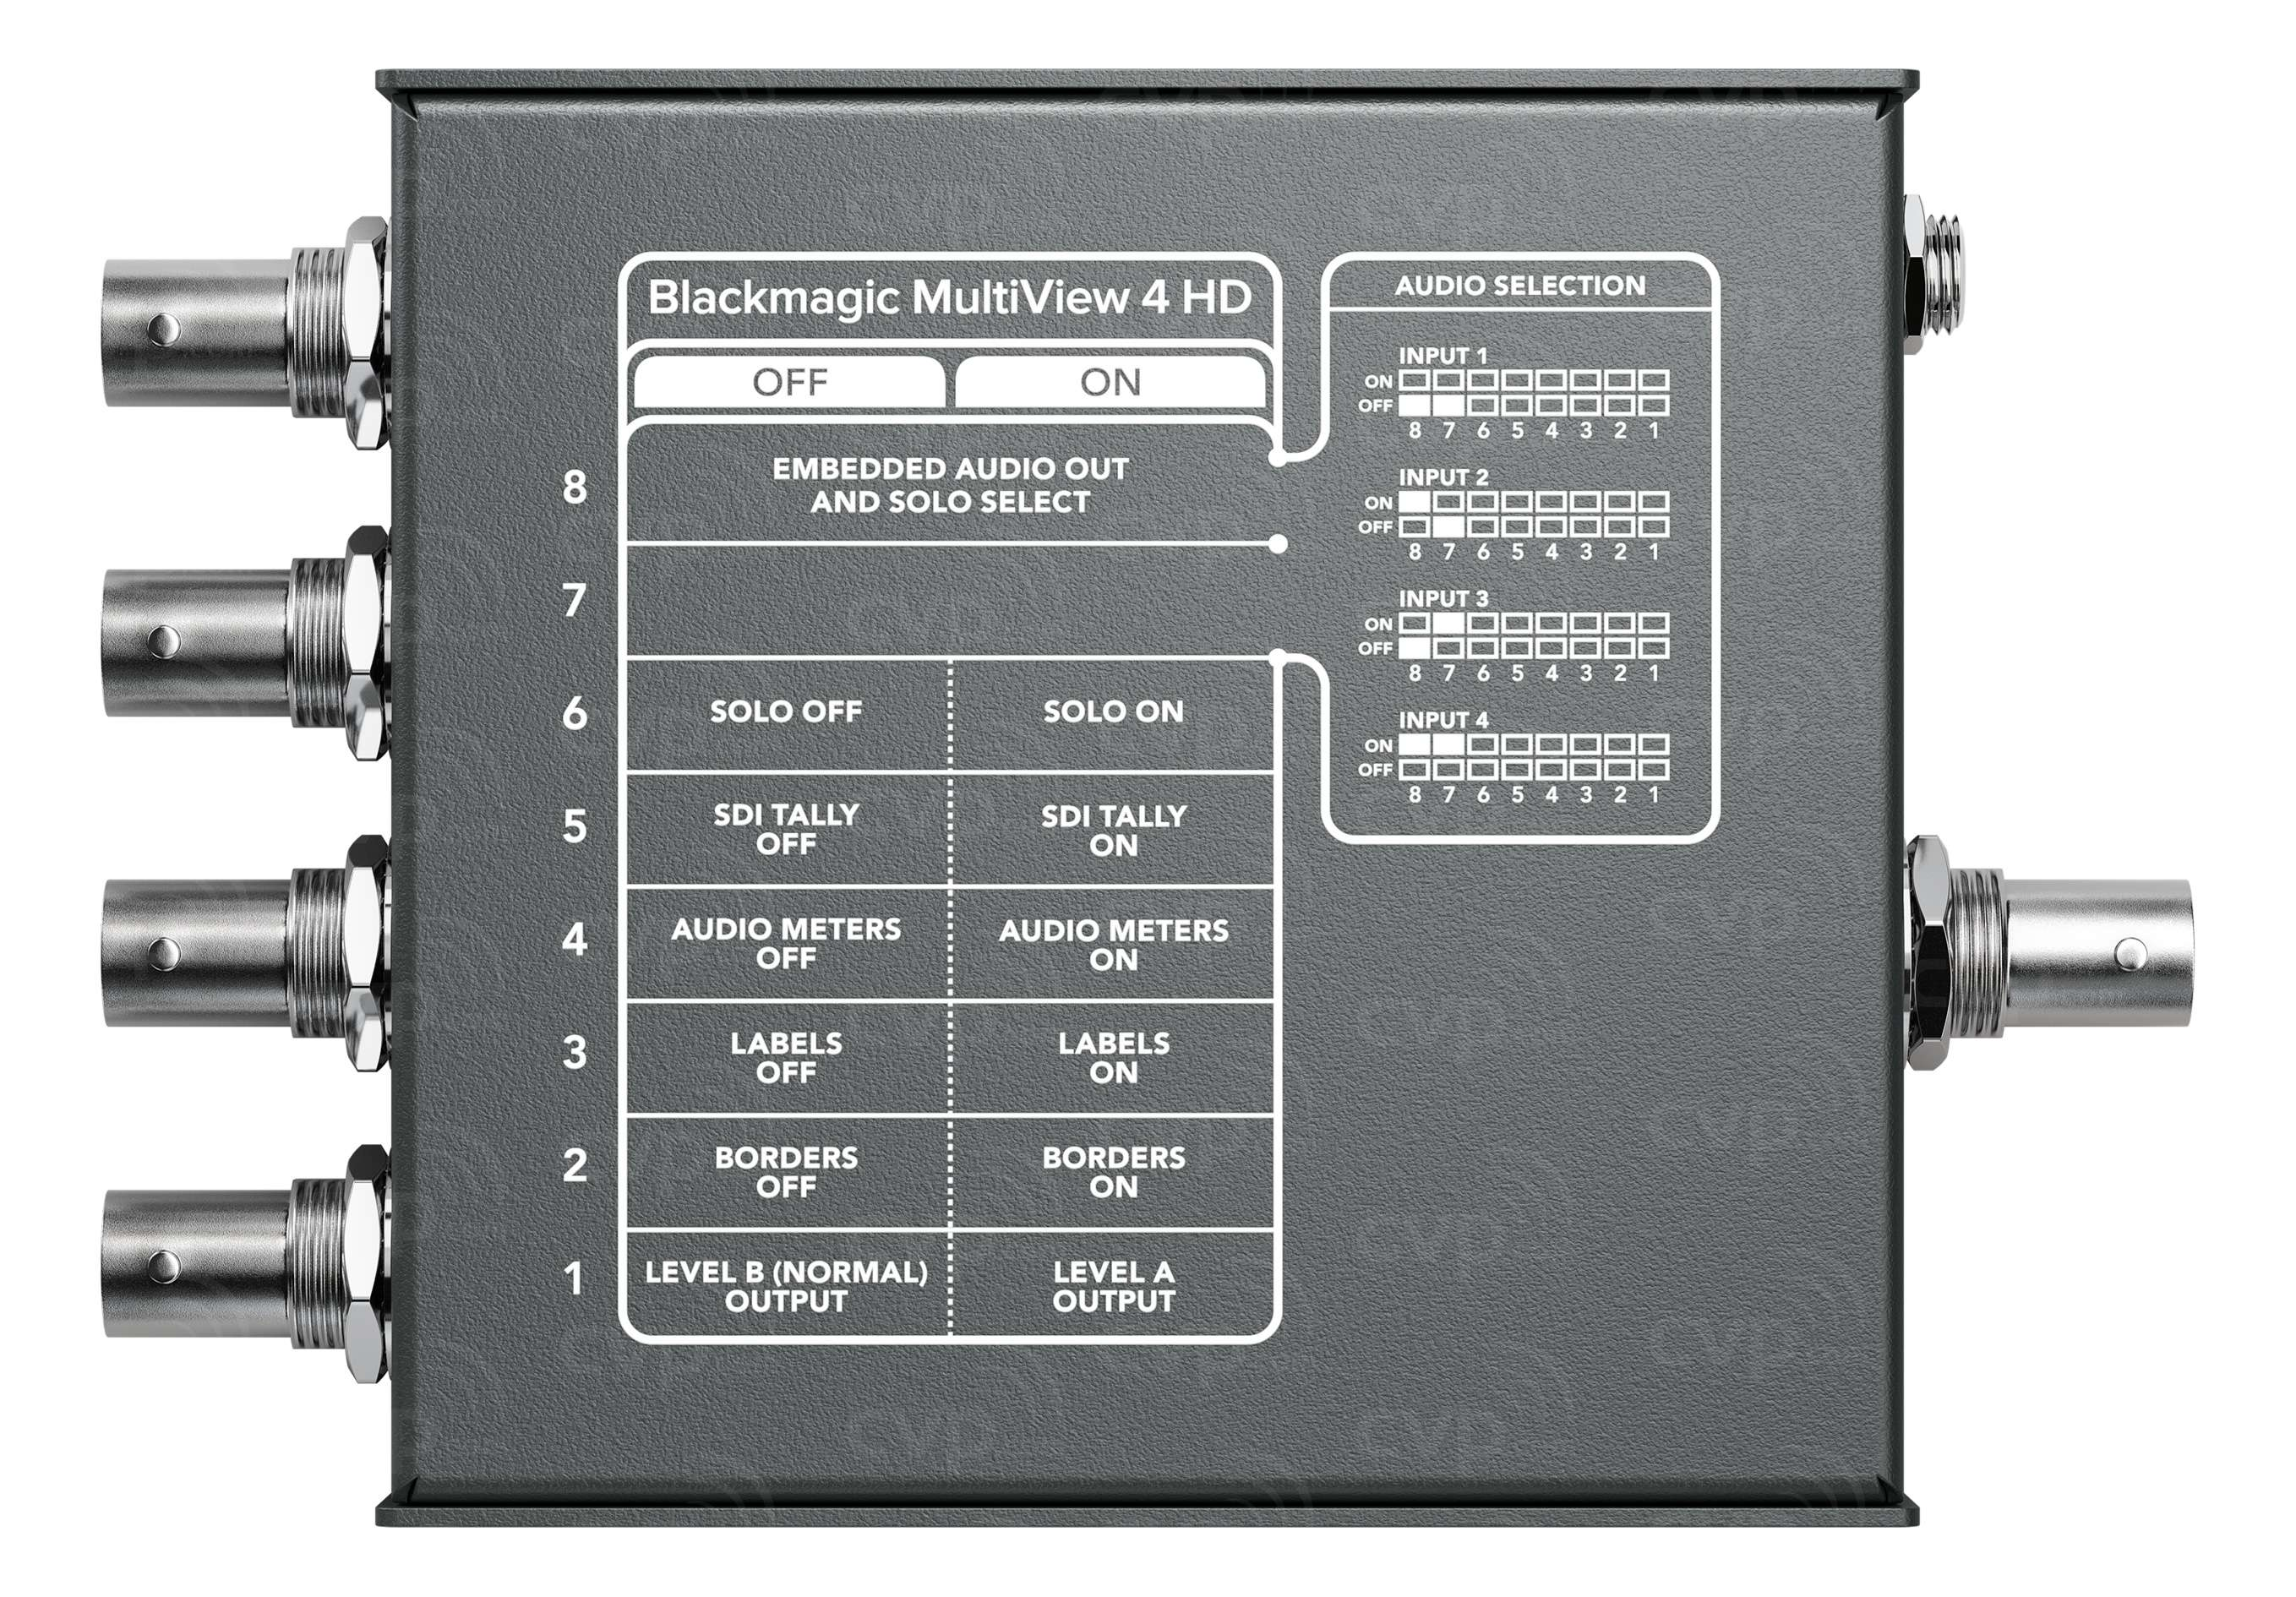 Buy Blackmagic Design Multiview 4 Hd Multi Source With 4 Independent 10 Bit Sd Sdi And Hd Sdi Inputs Bmd Hdl Multip3g 04hd